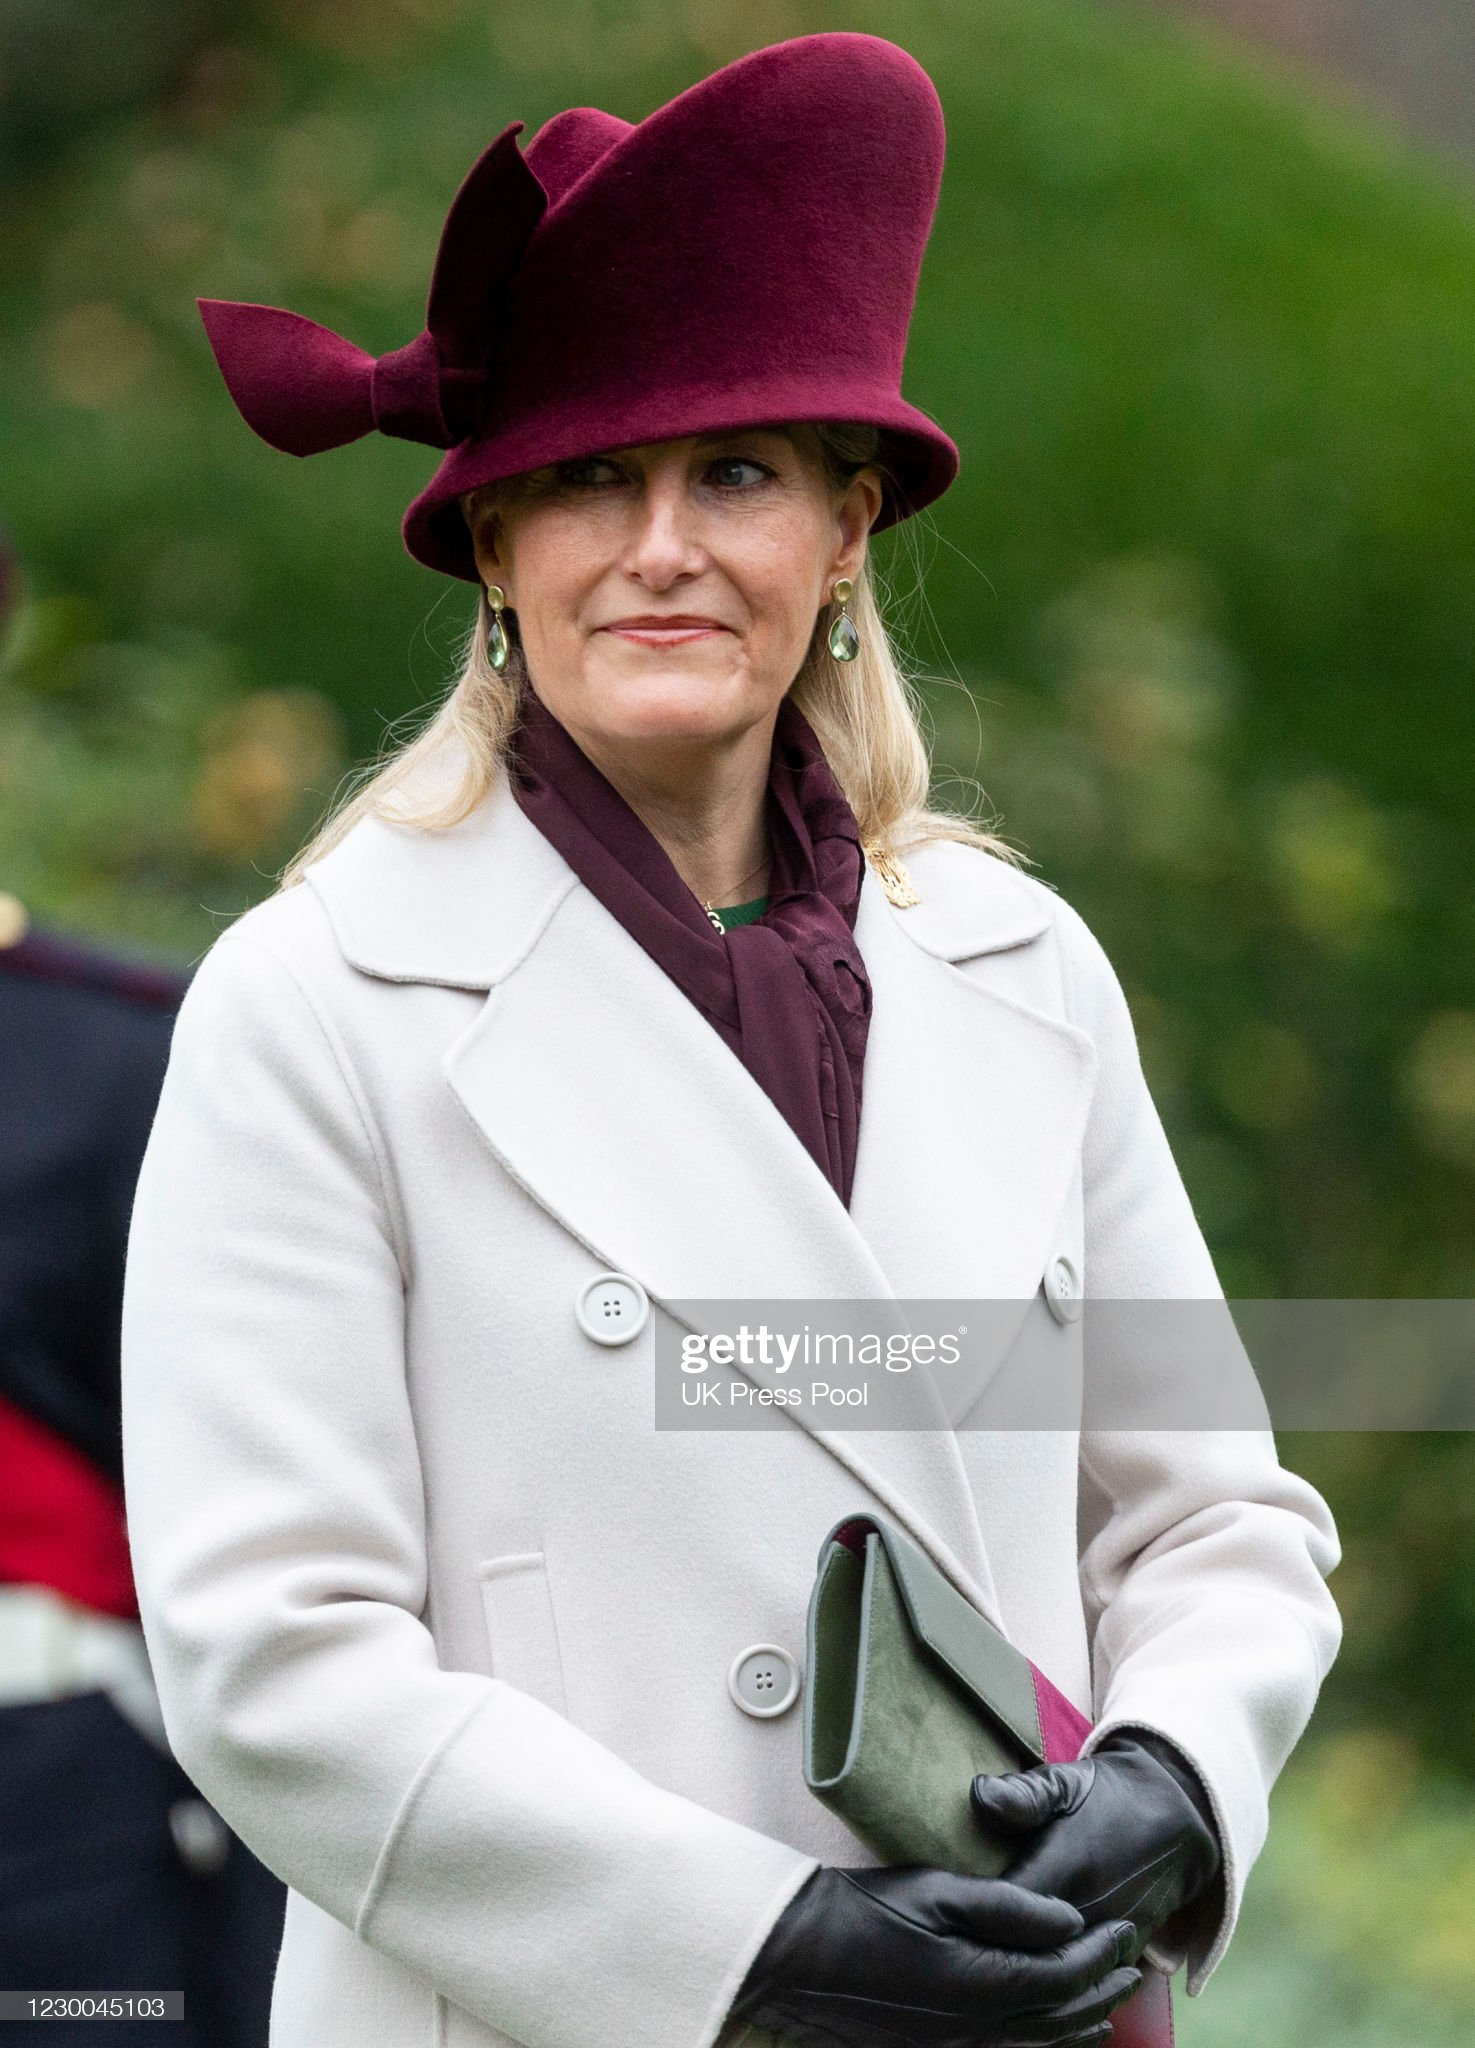 https://media.gettyimages.com/photos/sophie-countess-of-wessex-visits-the-corps-of-army-music-for-a-and-picture-id1230045103?s=2048x2048